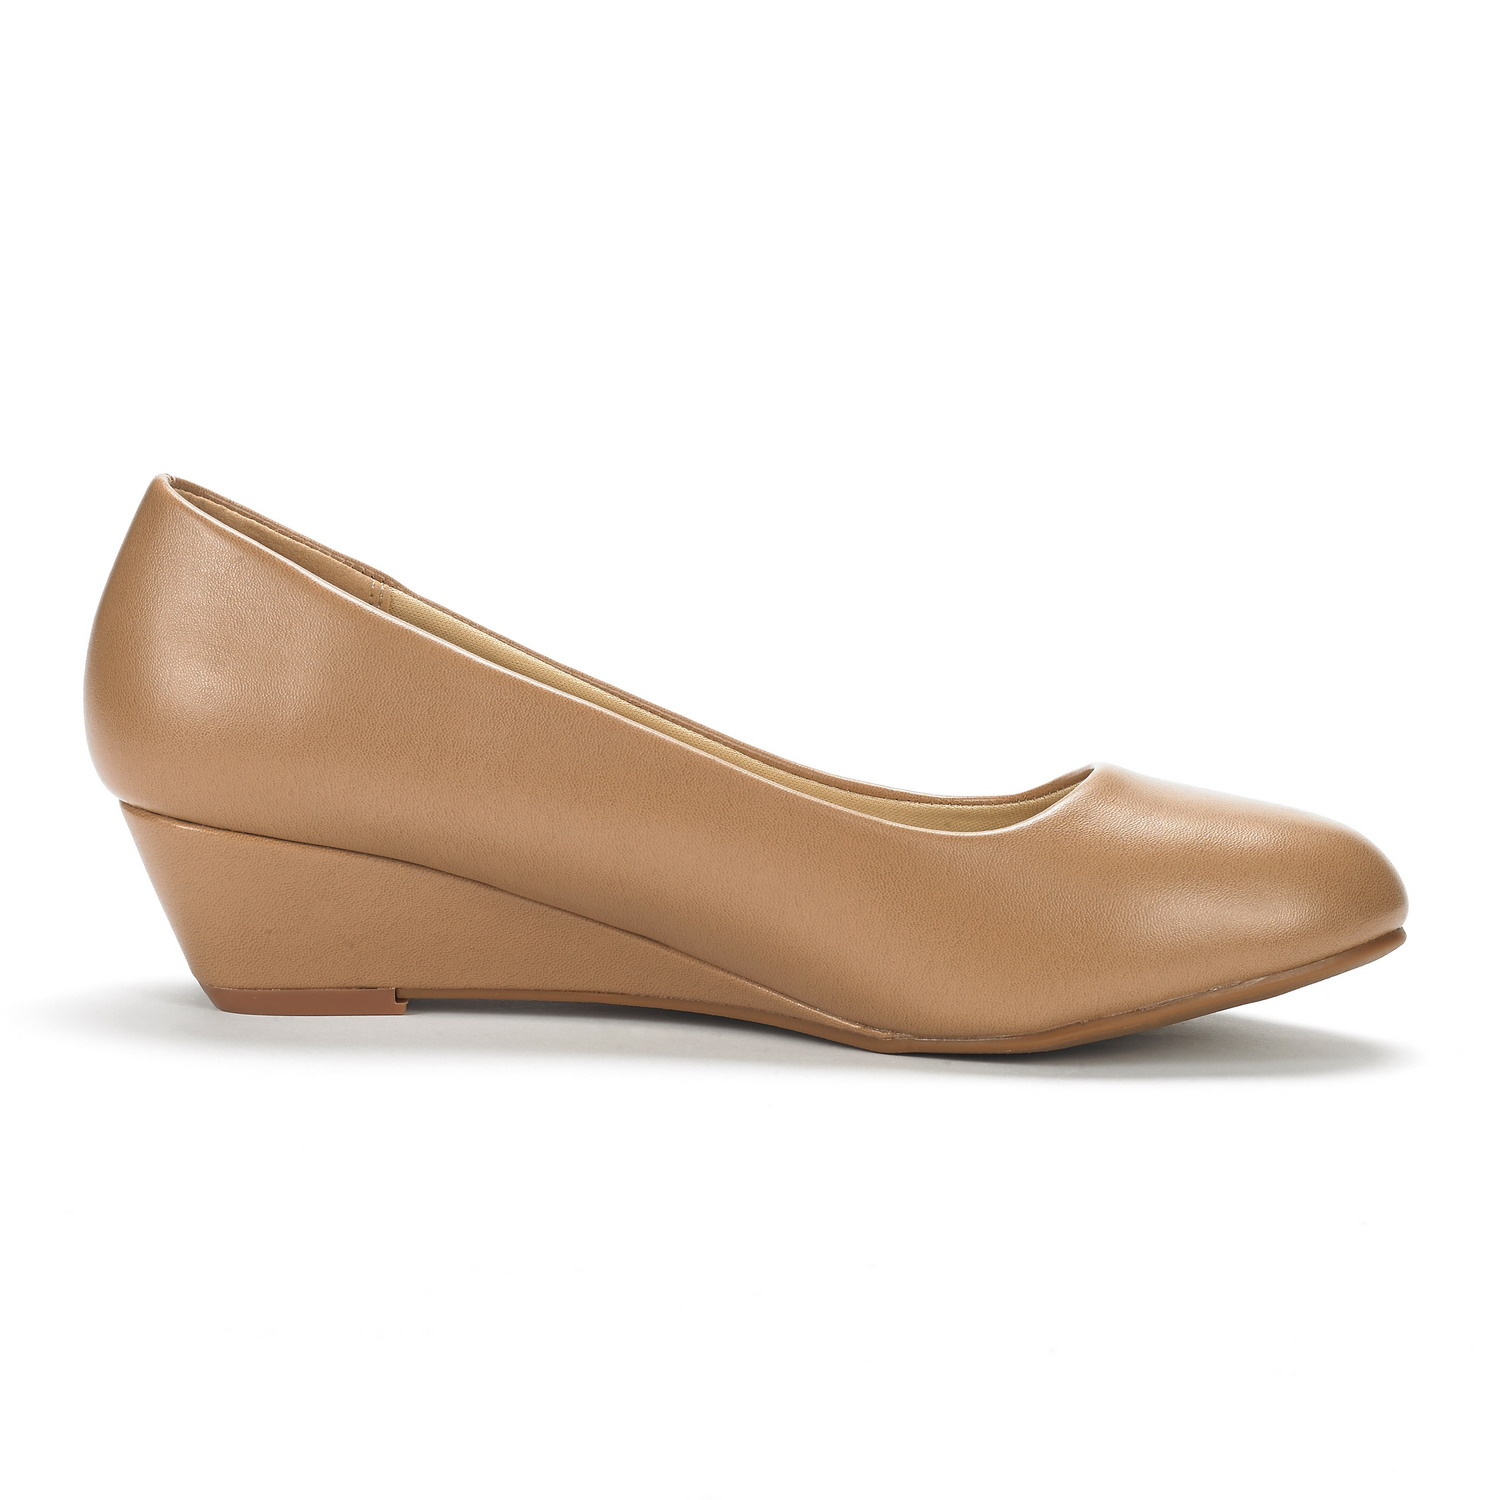 DREAM-PAIRS-Women-039-s-Mid-Wedge-Heel-Shoes-Slip-On-Comfort-Dress-Shoes-Suede-PU thumbnail 9